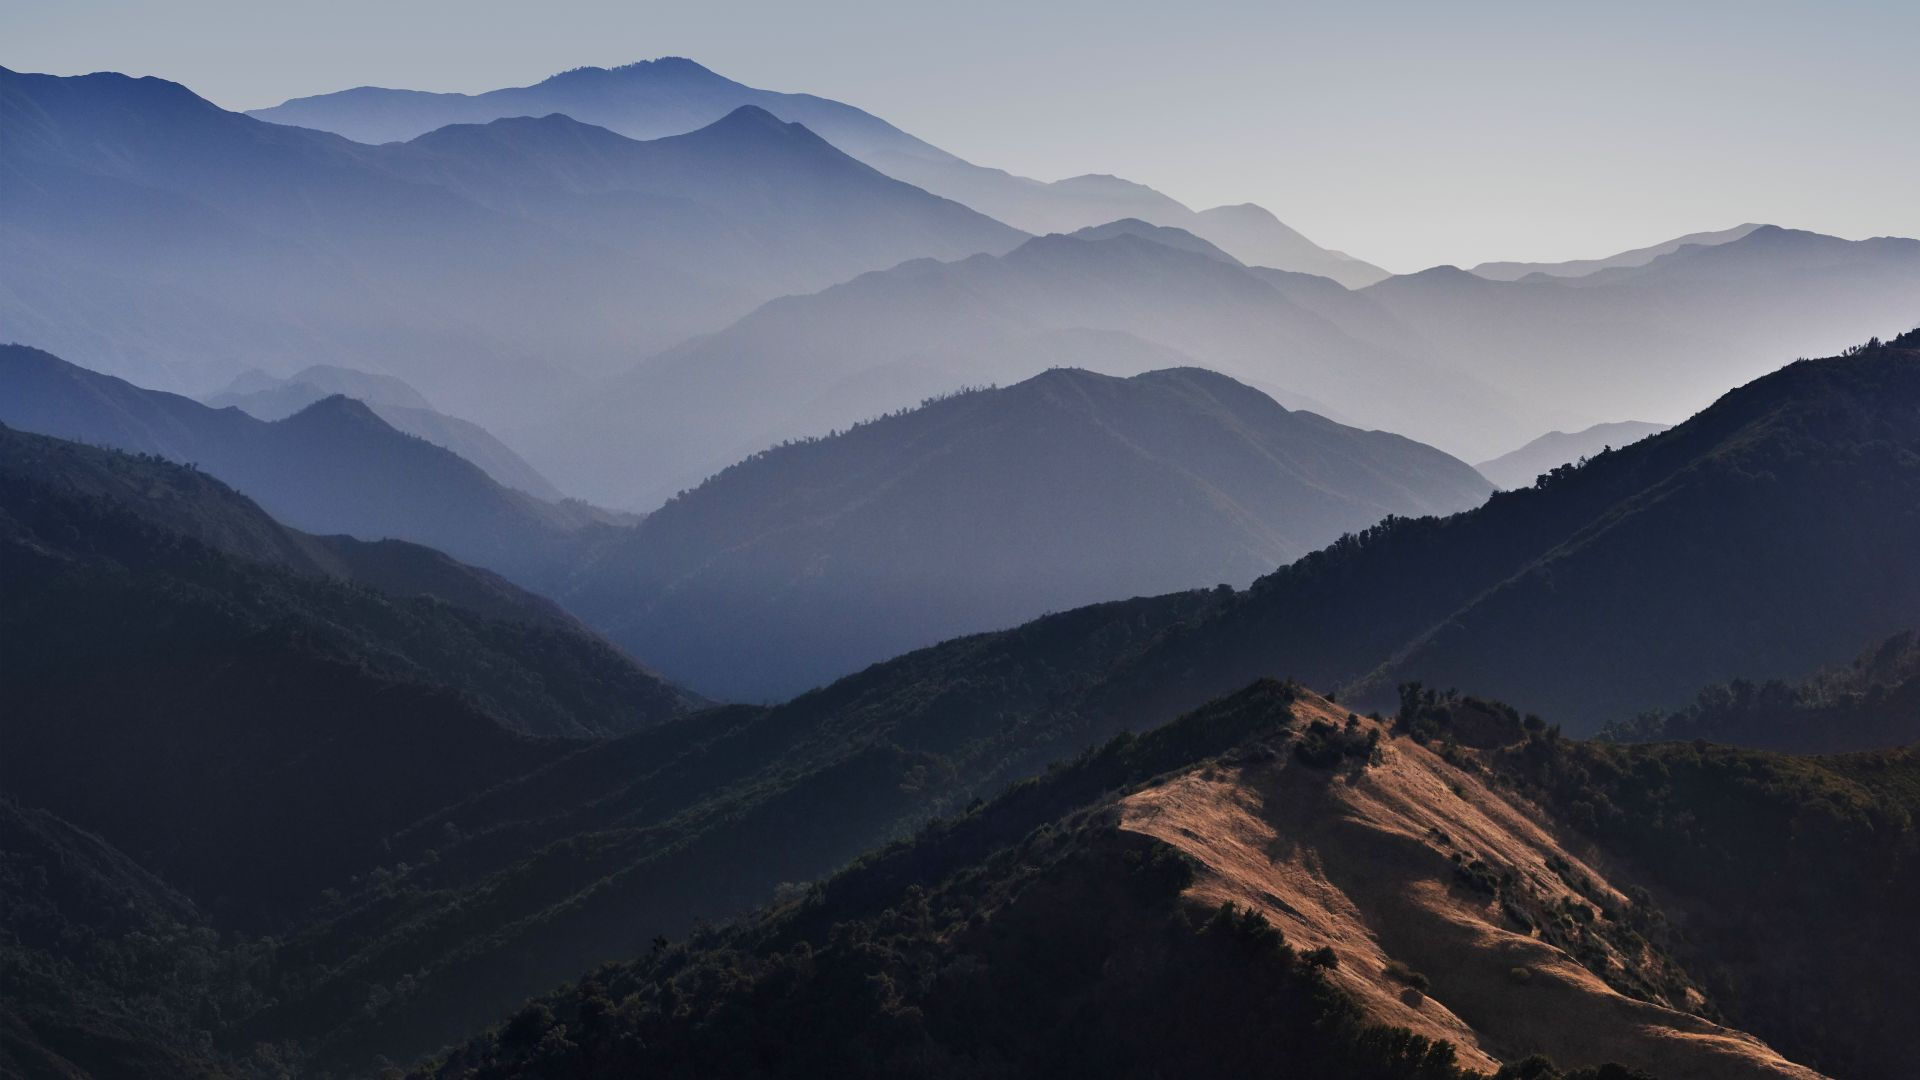 macOS Big Sur, mountains, Apple October 2020 Event, 5K (horizontal)